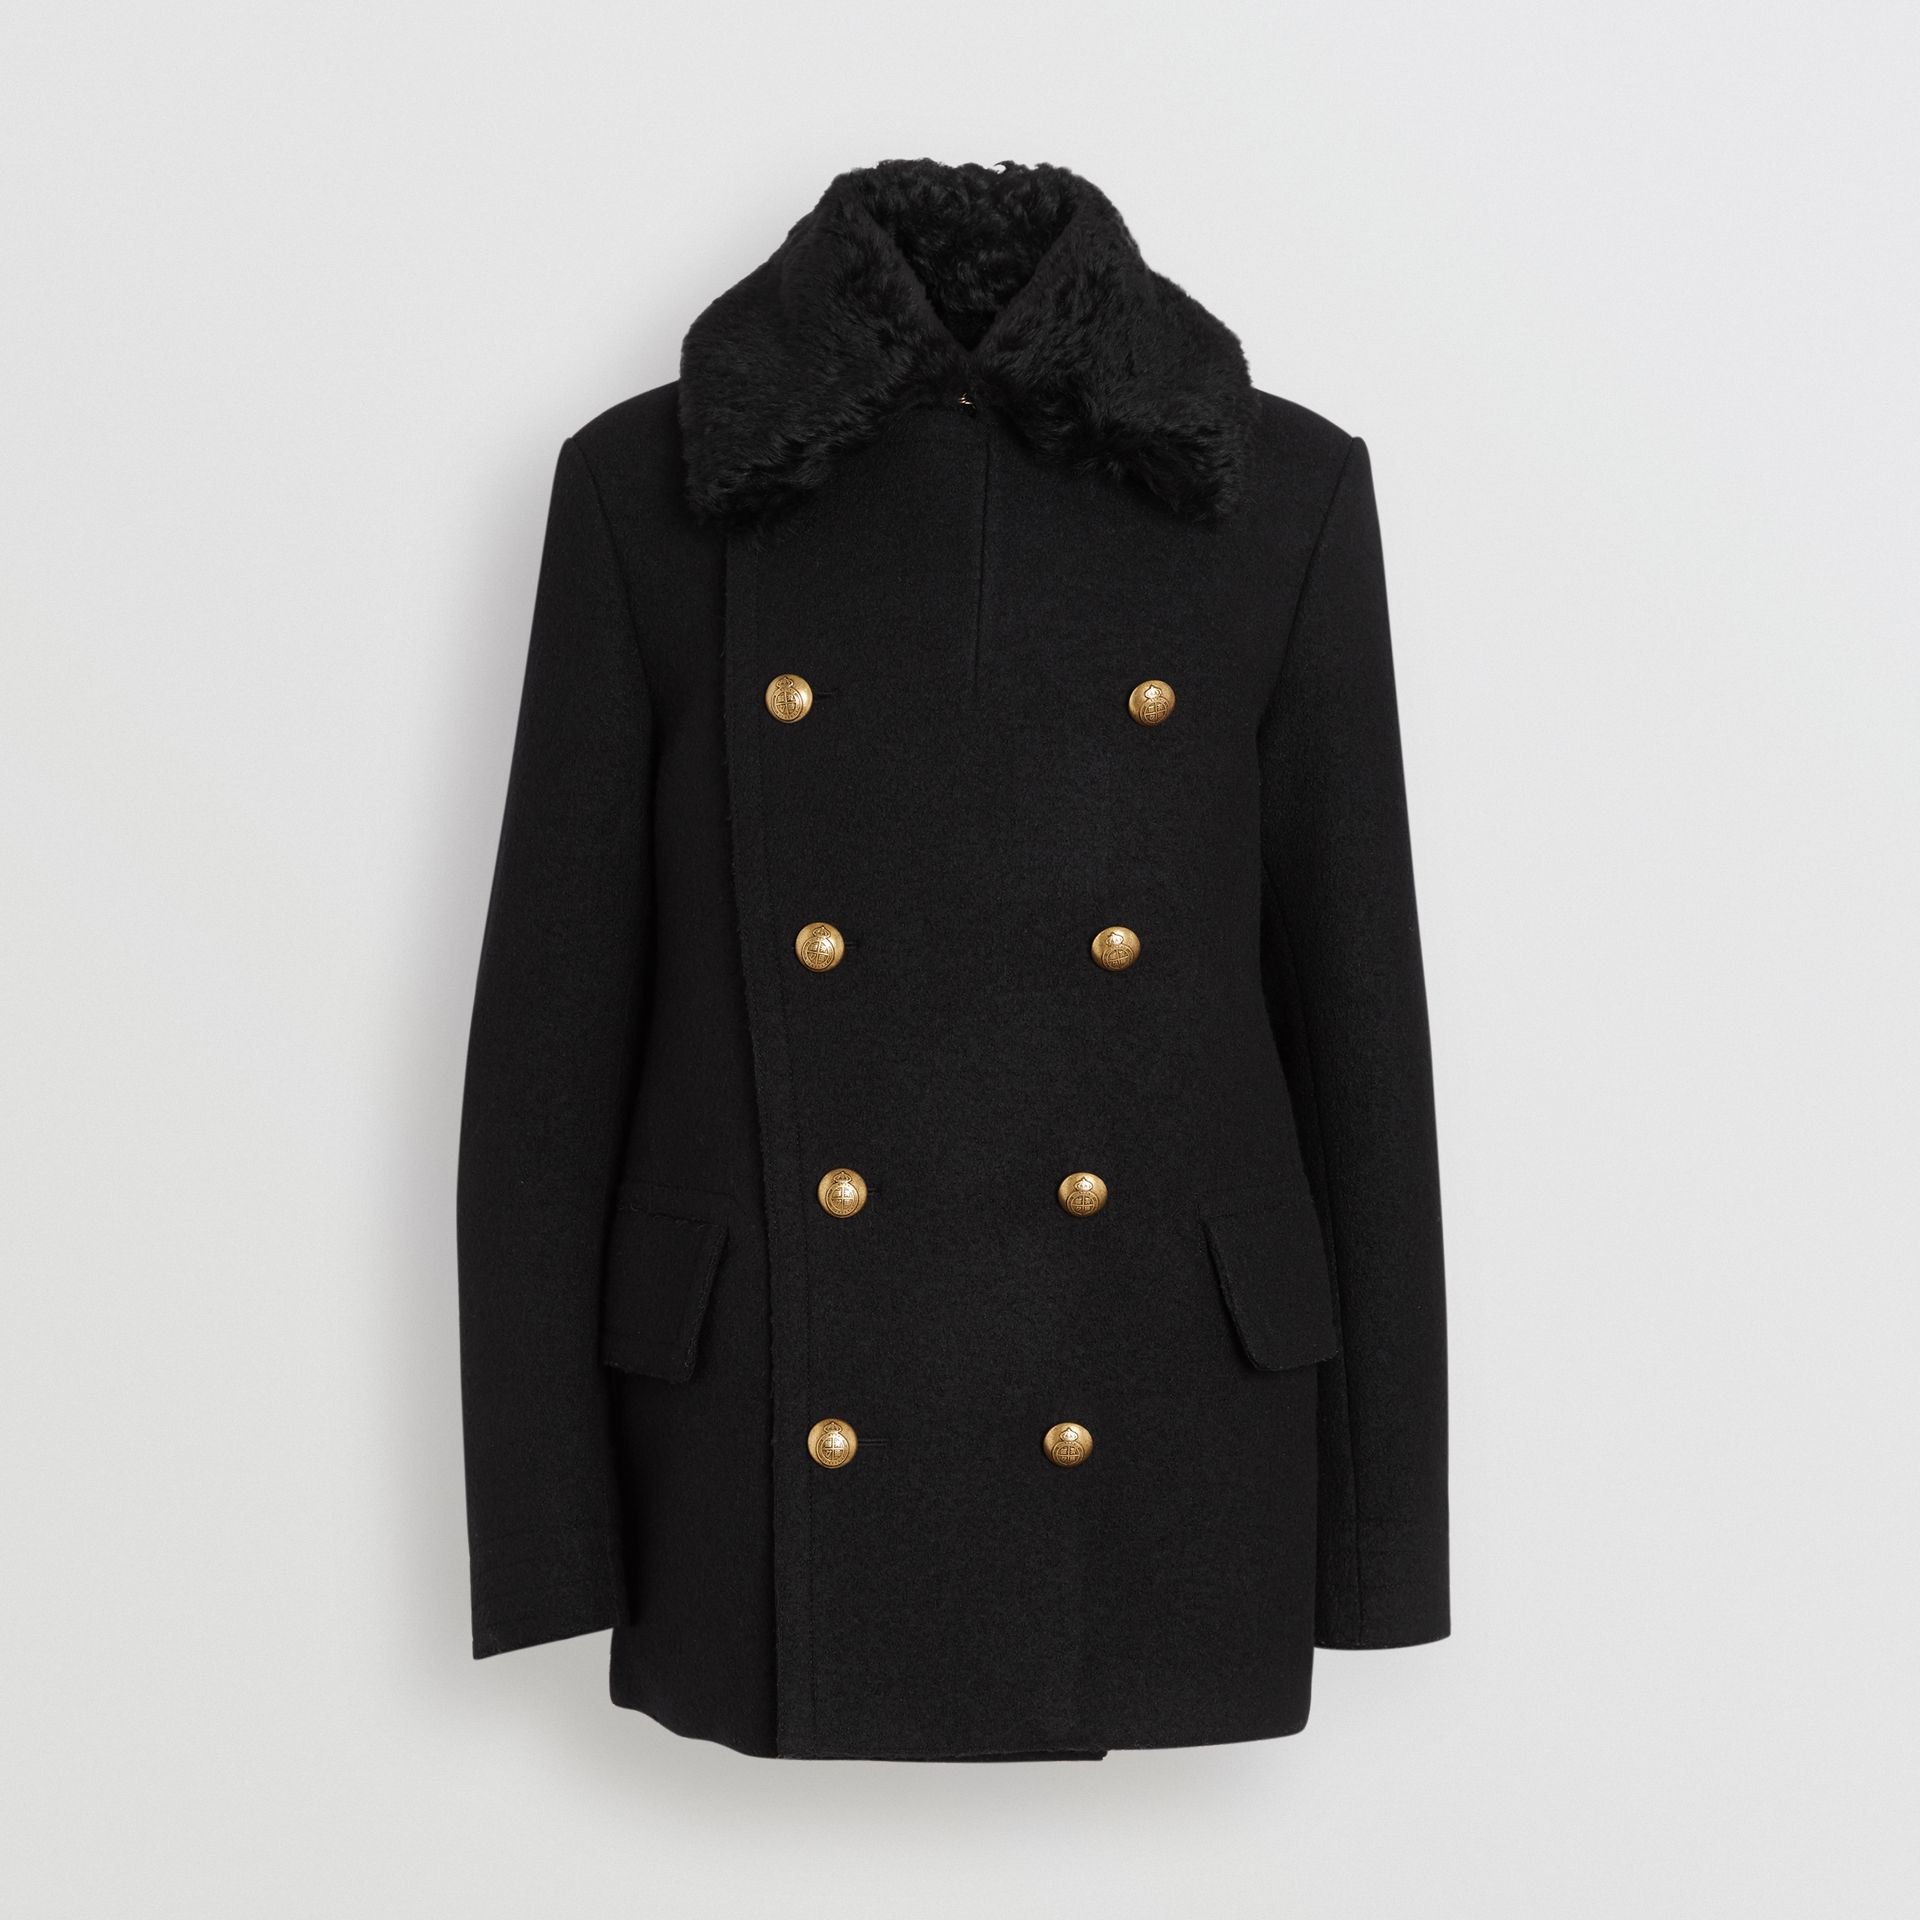 Detachable Shearling Collar Wool Pea Coat in Black - Men | Burberry United Kingdom - gallery image 3